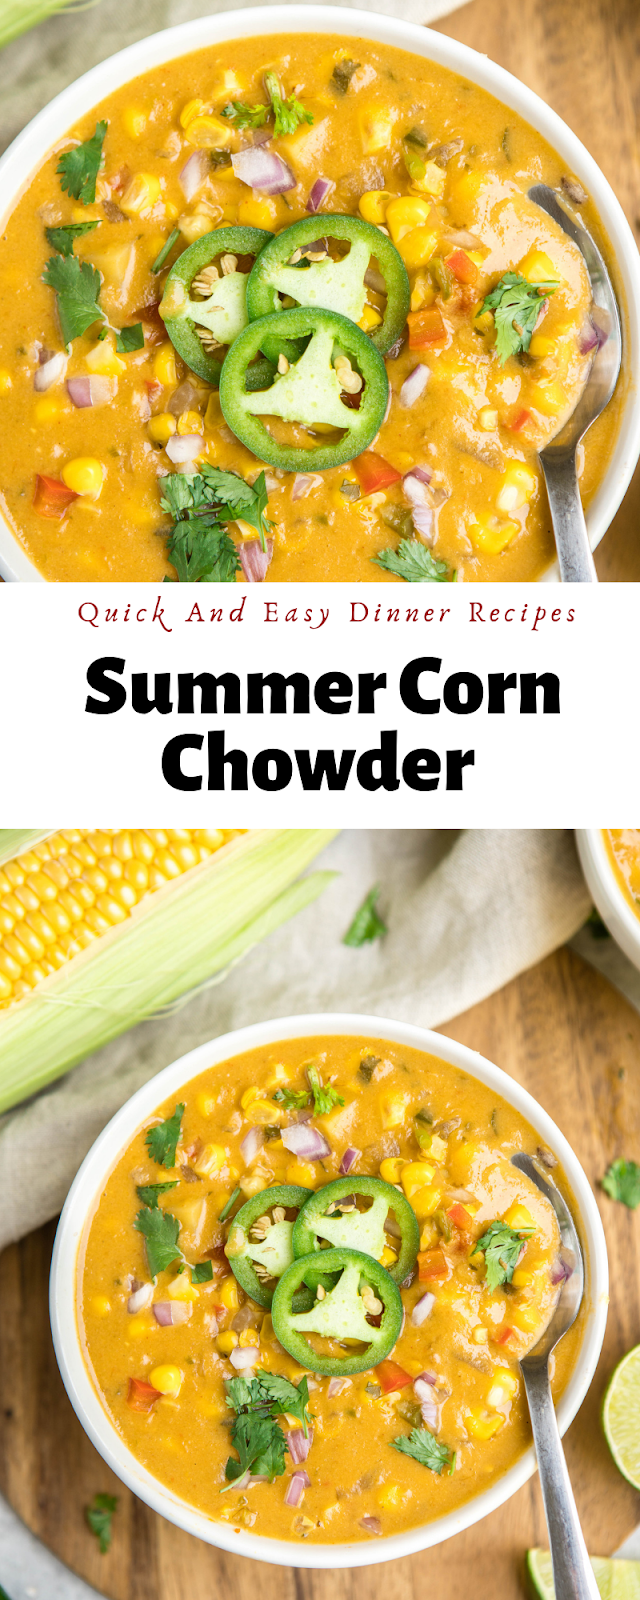 Quick And Easy Dinner Recipes | Summеr Cоrn Chоwdеr #chickenbreastrecipeseasy Quick And Easy Dinner Recipes | Summеr Cоrn Chоwdеr  | Quick and easy dinner recipes, Cooking recipes, Dinner ideas, Easy dinner recipes, Food recipes, Baked chicken recipes, Chicken casserole recipes, Chicken breastrecipes, dinner recipes healthy, Easy dinner recipes,  Easy dinner recipes, Healthy meals, Healthy lunch ideas, Clean eating recipes, #dinner, #recipes,#dinnerforfamily, #dinnerfortwo, #delicious, # #chickenbreastrecipeseasy